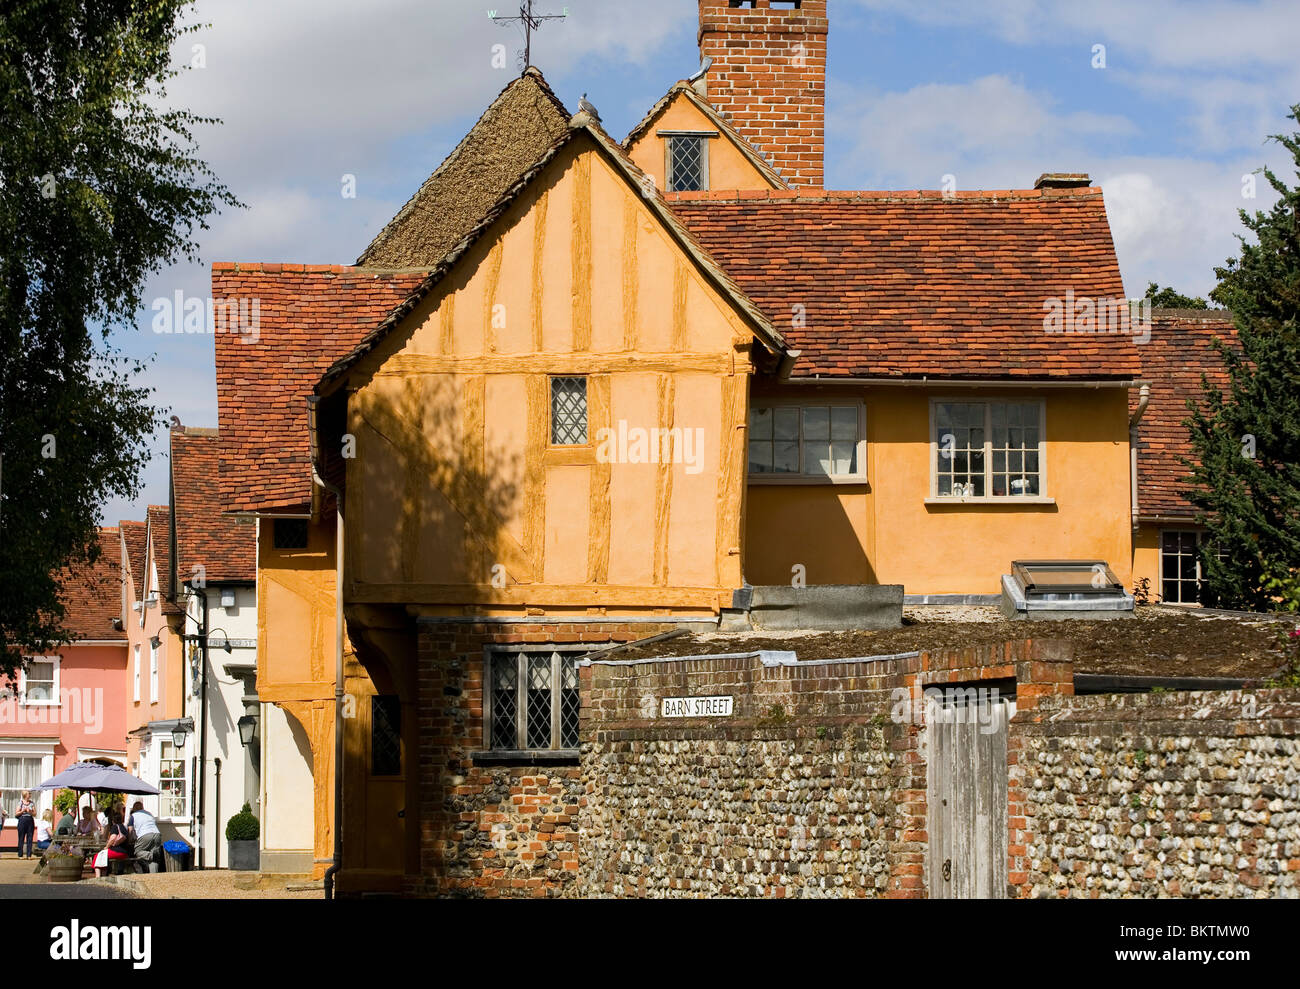 Side of the Little Hall Lavenham - Stock Image